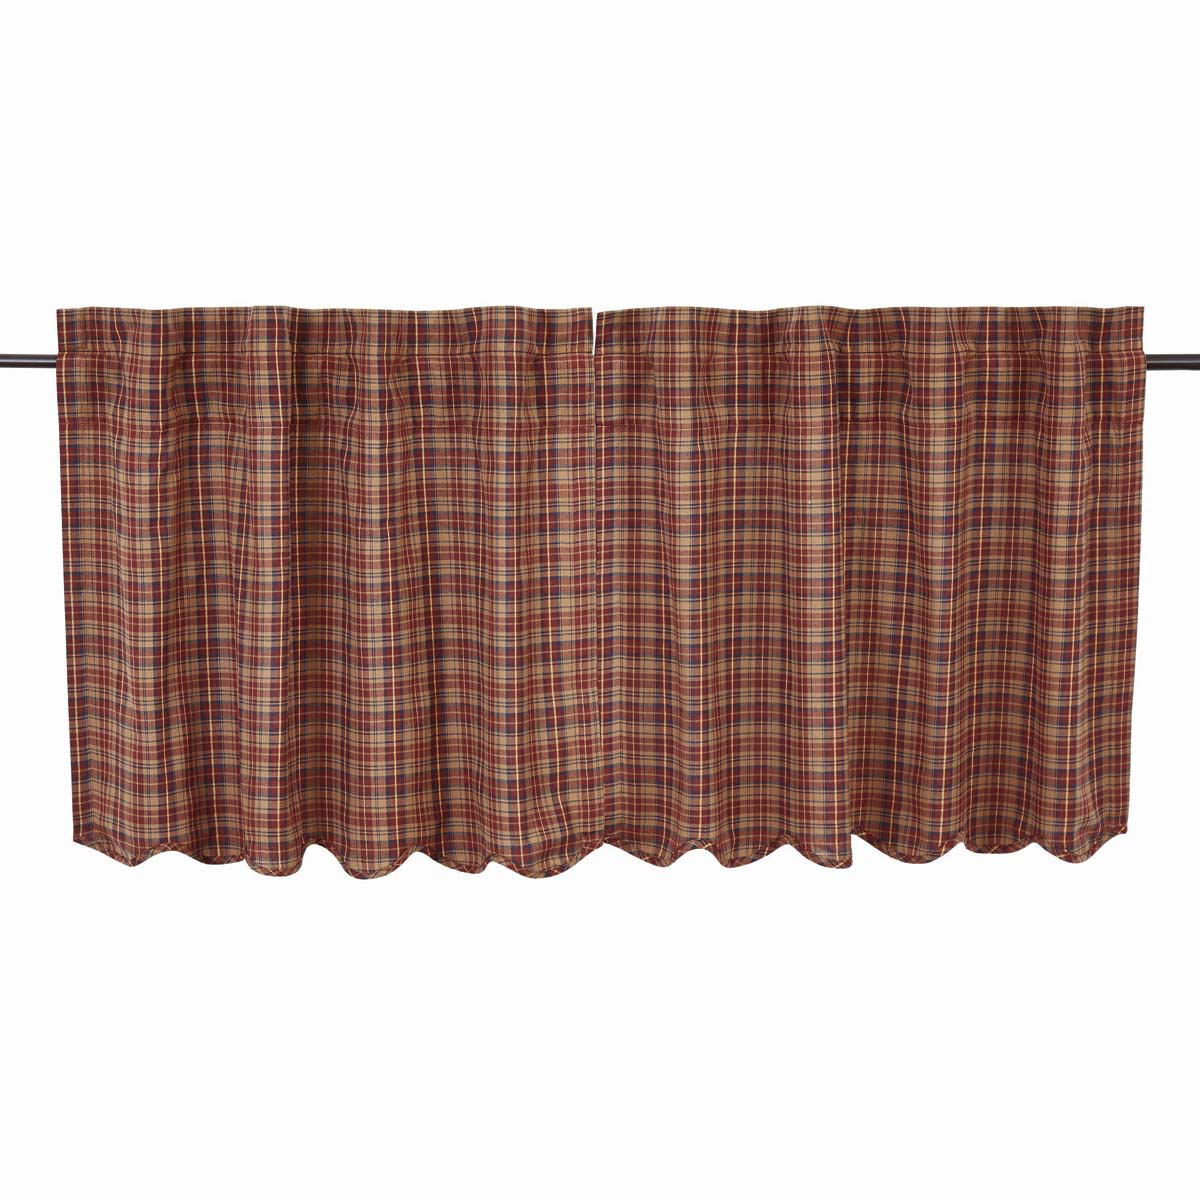 "Parker Tier Set - Scalloped Lined 24x36"" - Vhc Brands"